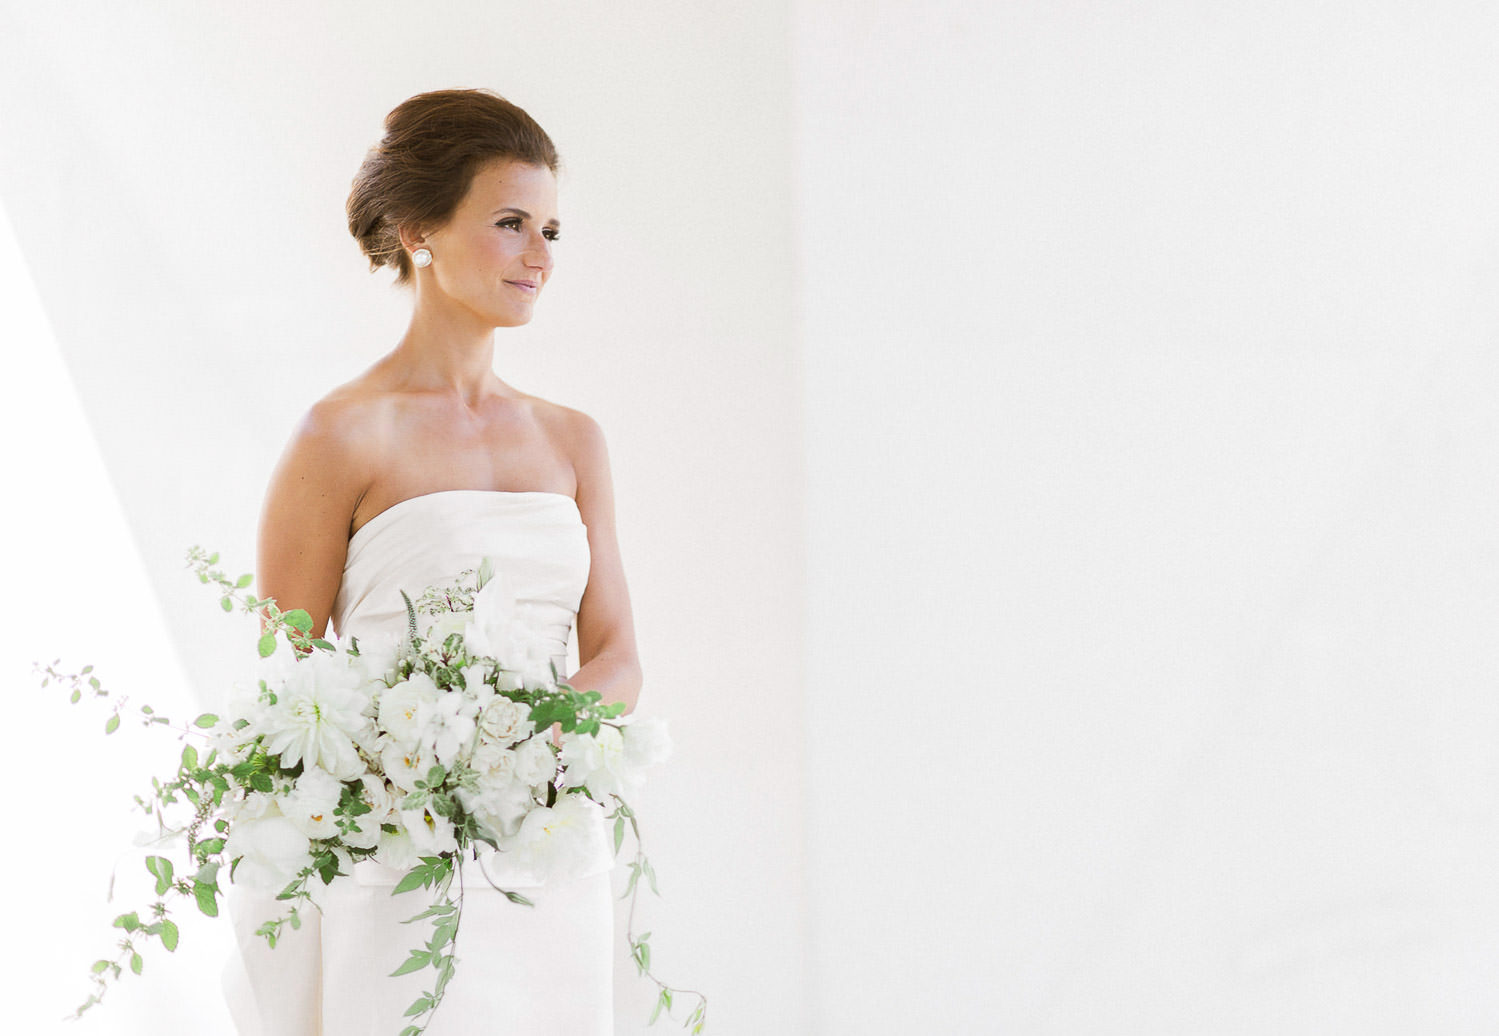 Stunning bride with Oscar de la Renta gown and organic bouquet in her Tuscany inspired wedding | Photo: Camilla Anchisi